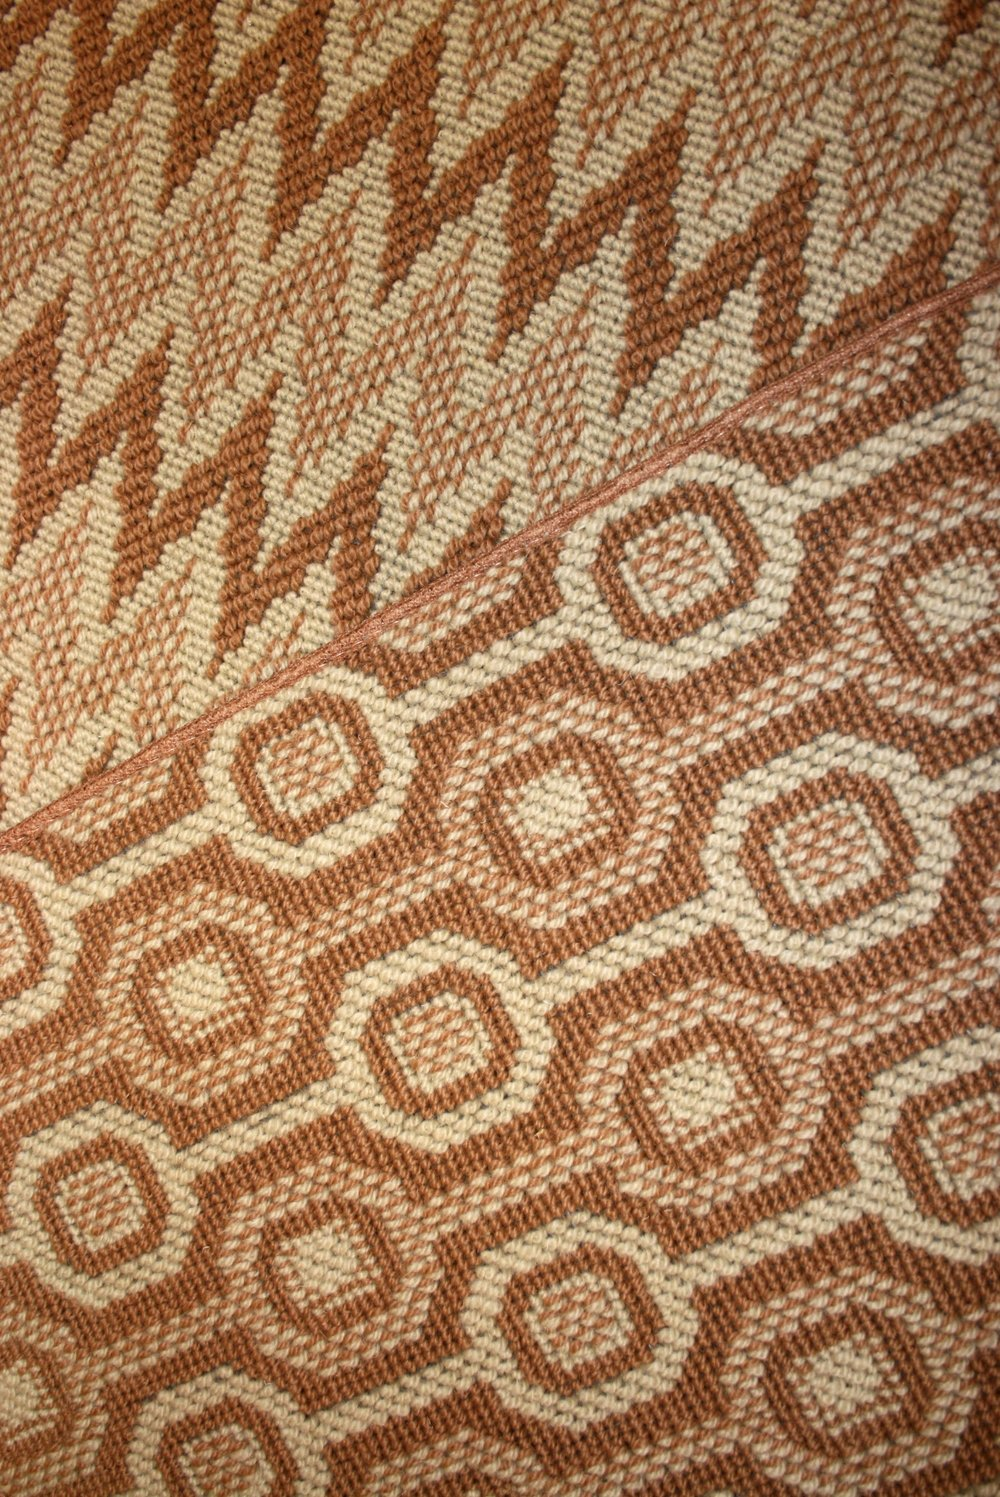 Orange and neutral geometric wool carpet